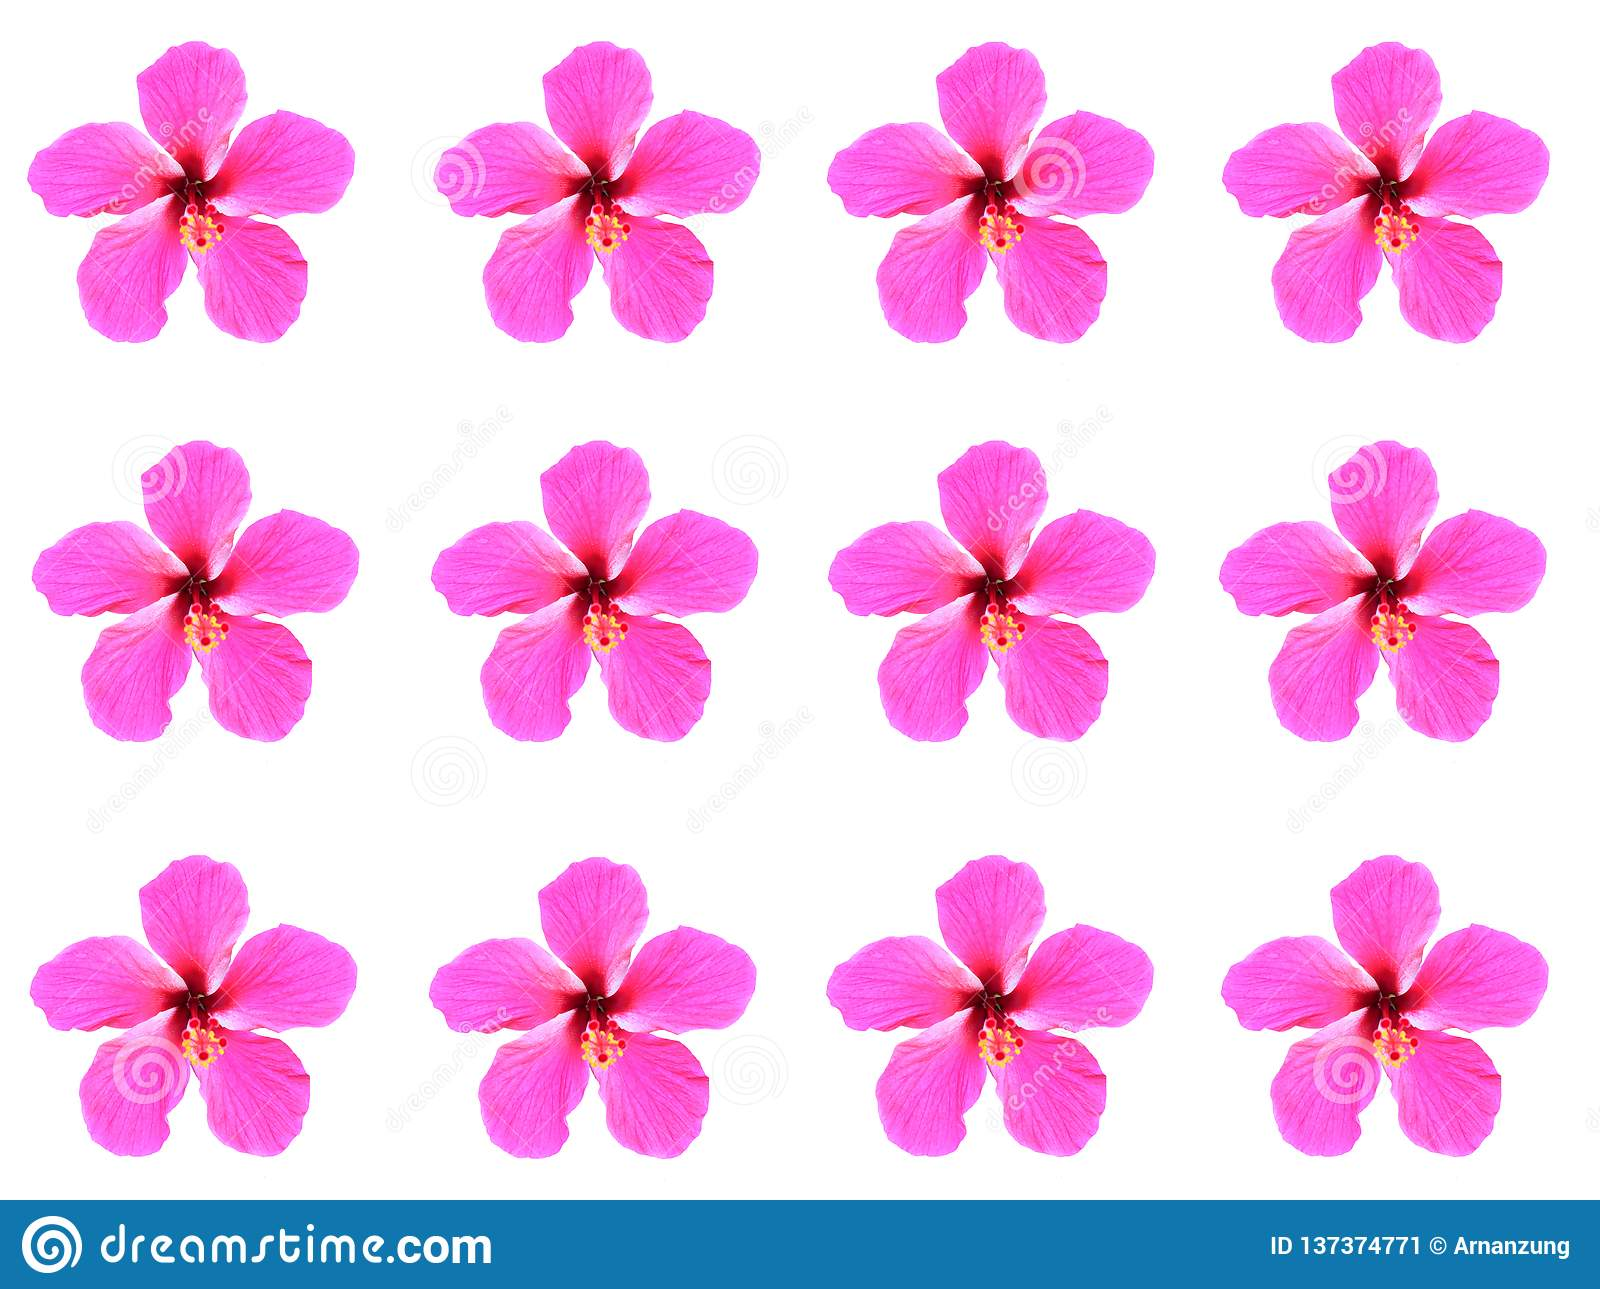 Hibiscus Flower Blooming And Alignment Isolated On White Background